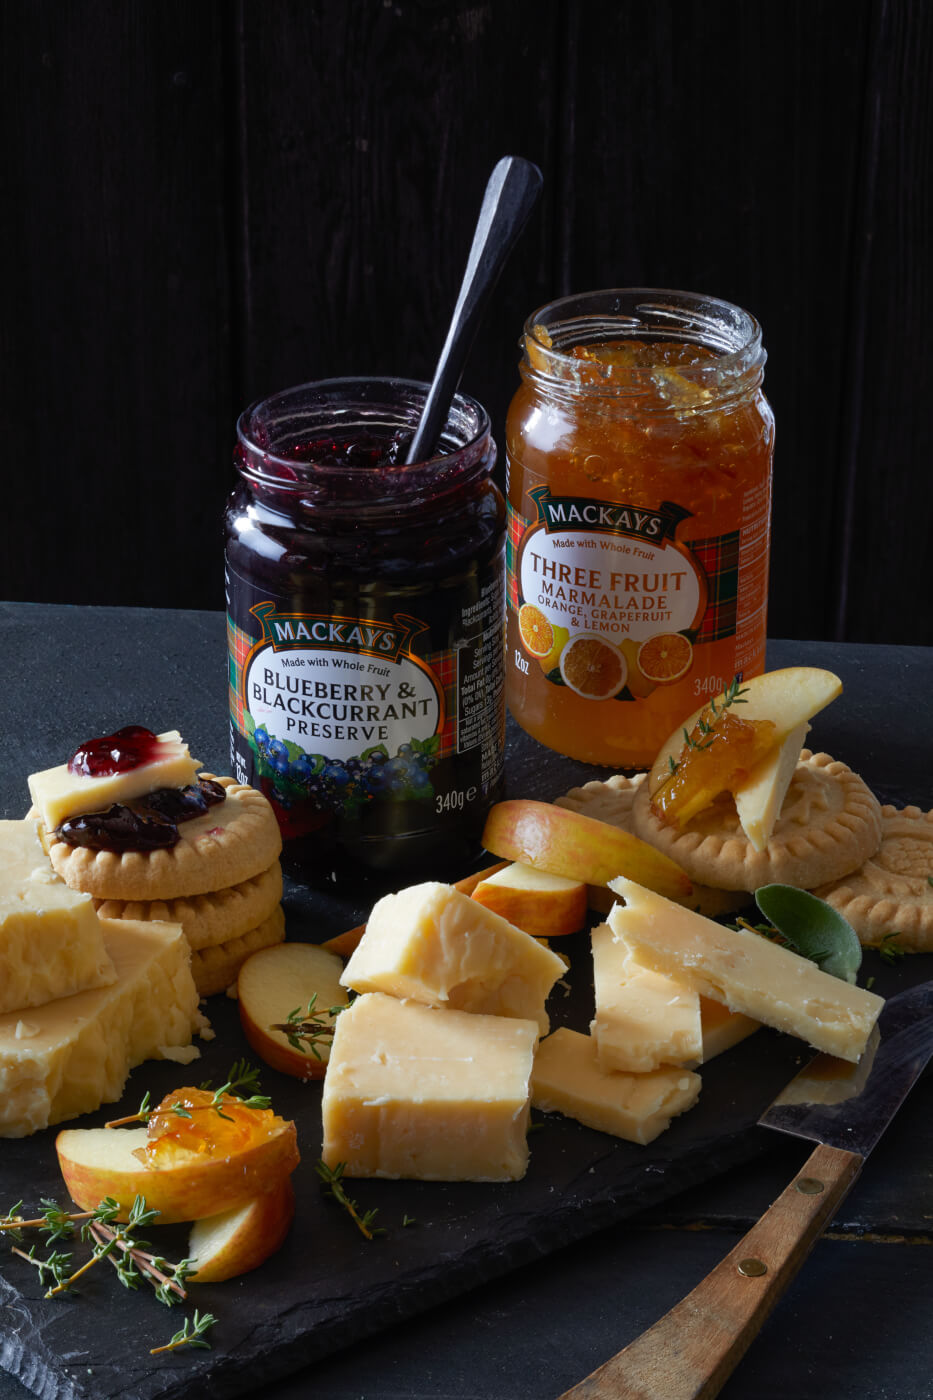 Mackays Chutneys and Preserves from Scotland.